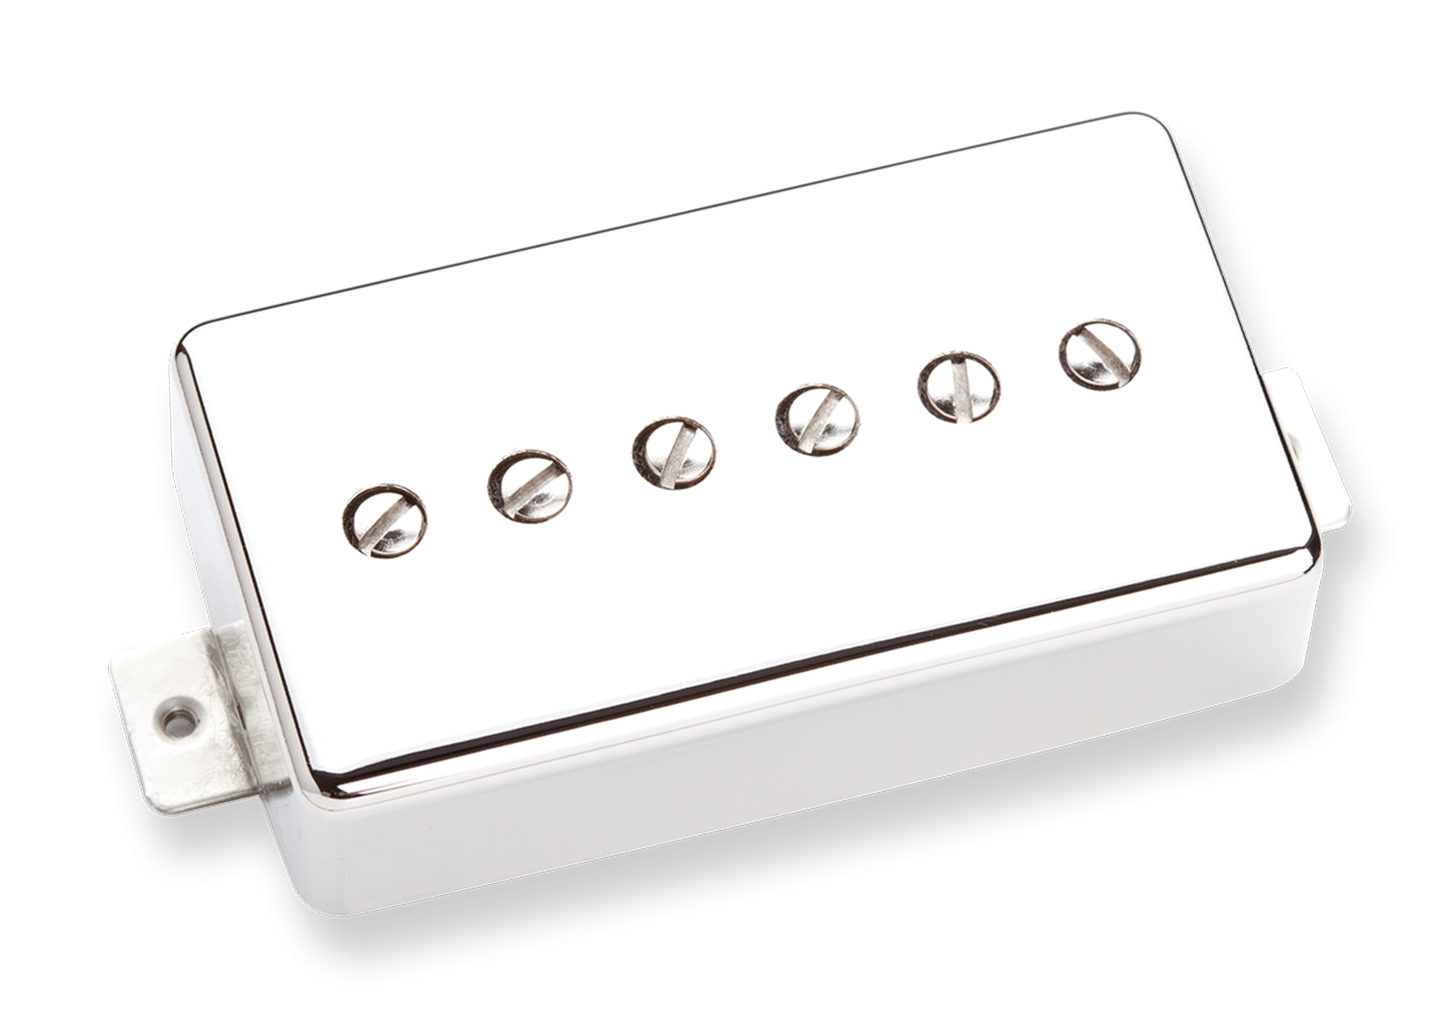 Seymour Duncan Phat Cat - SPH90-1B Bridge Nickel Cover